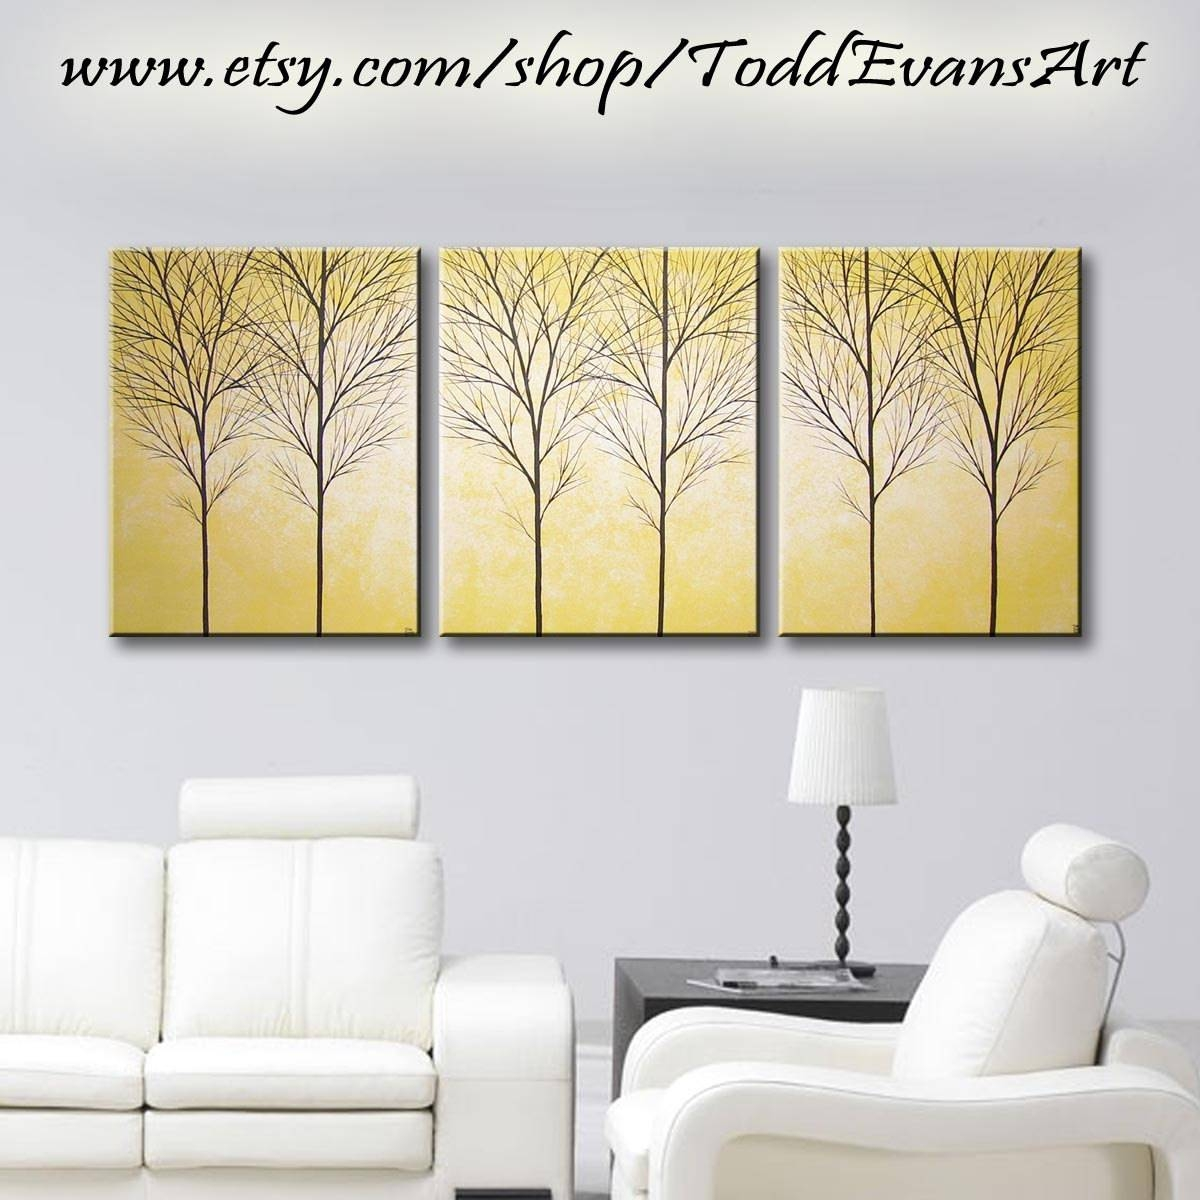 Yellow Painting 3 Piece Wall Art Original Paintings Bedroom With Latest Large Yellow Wall Art (Gallery 5 of 20)